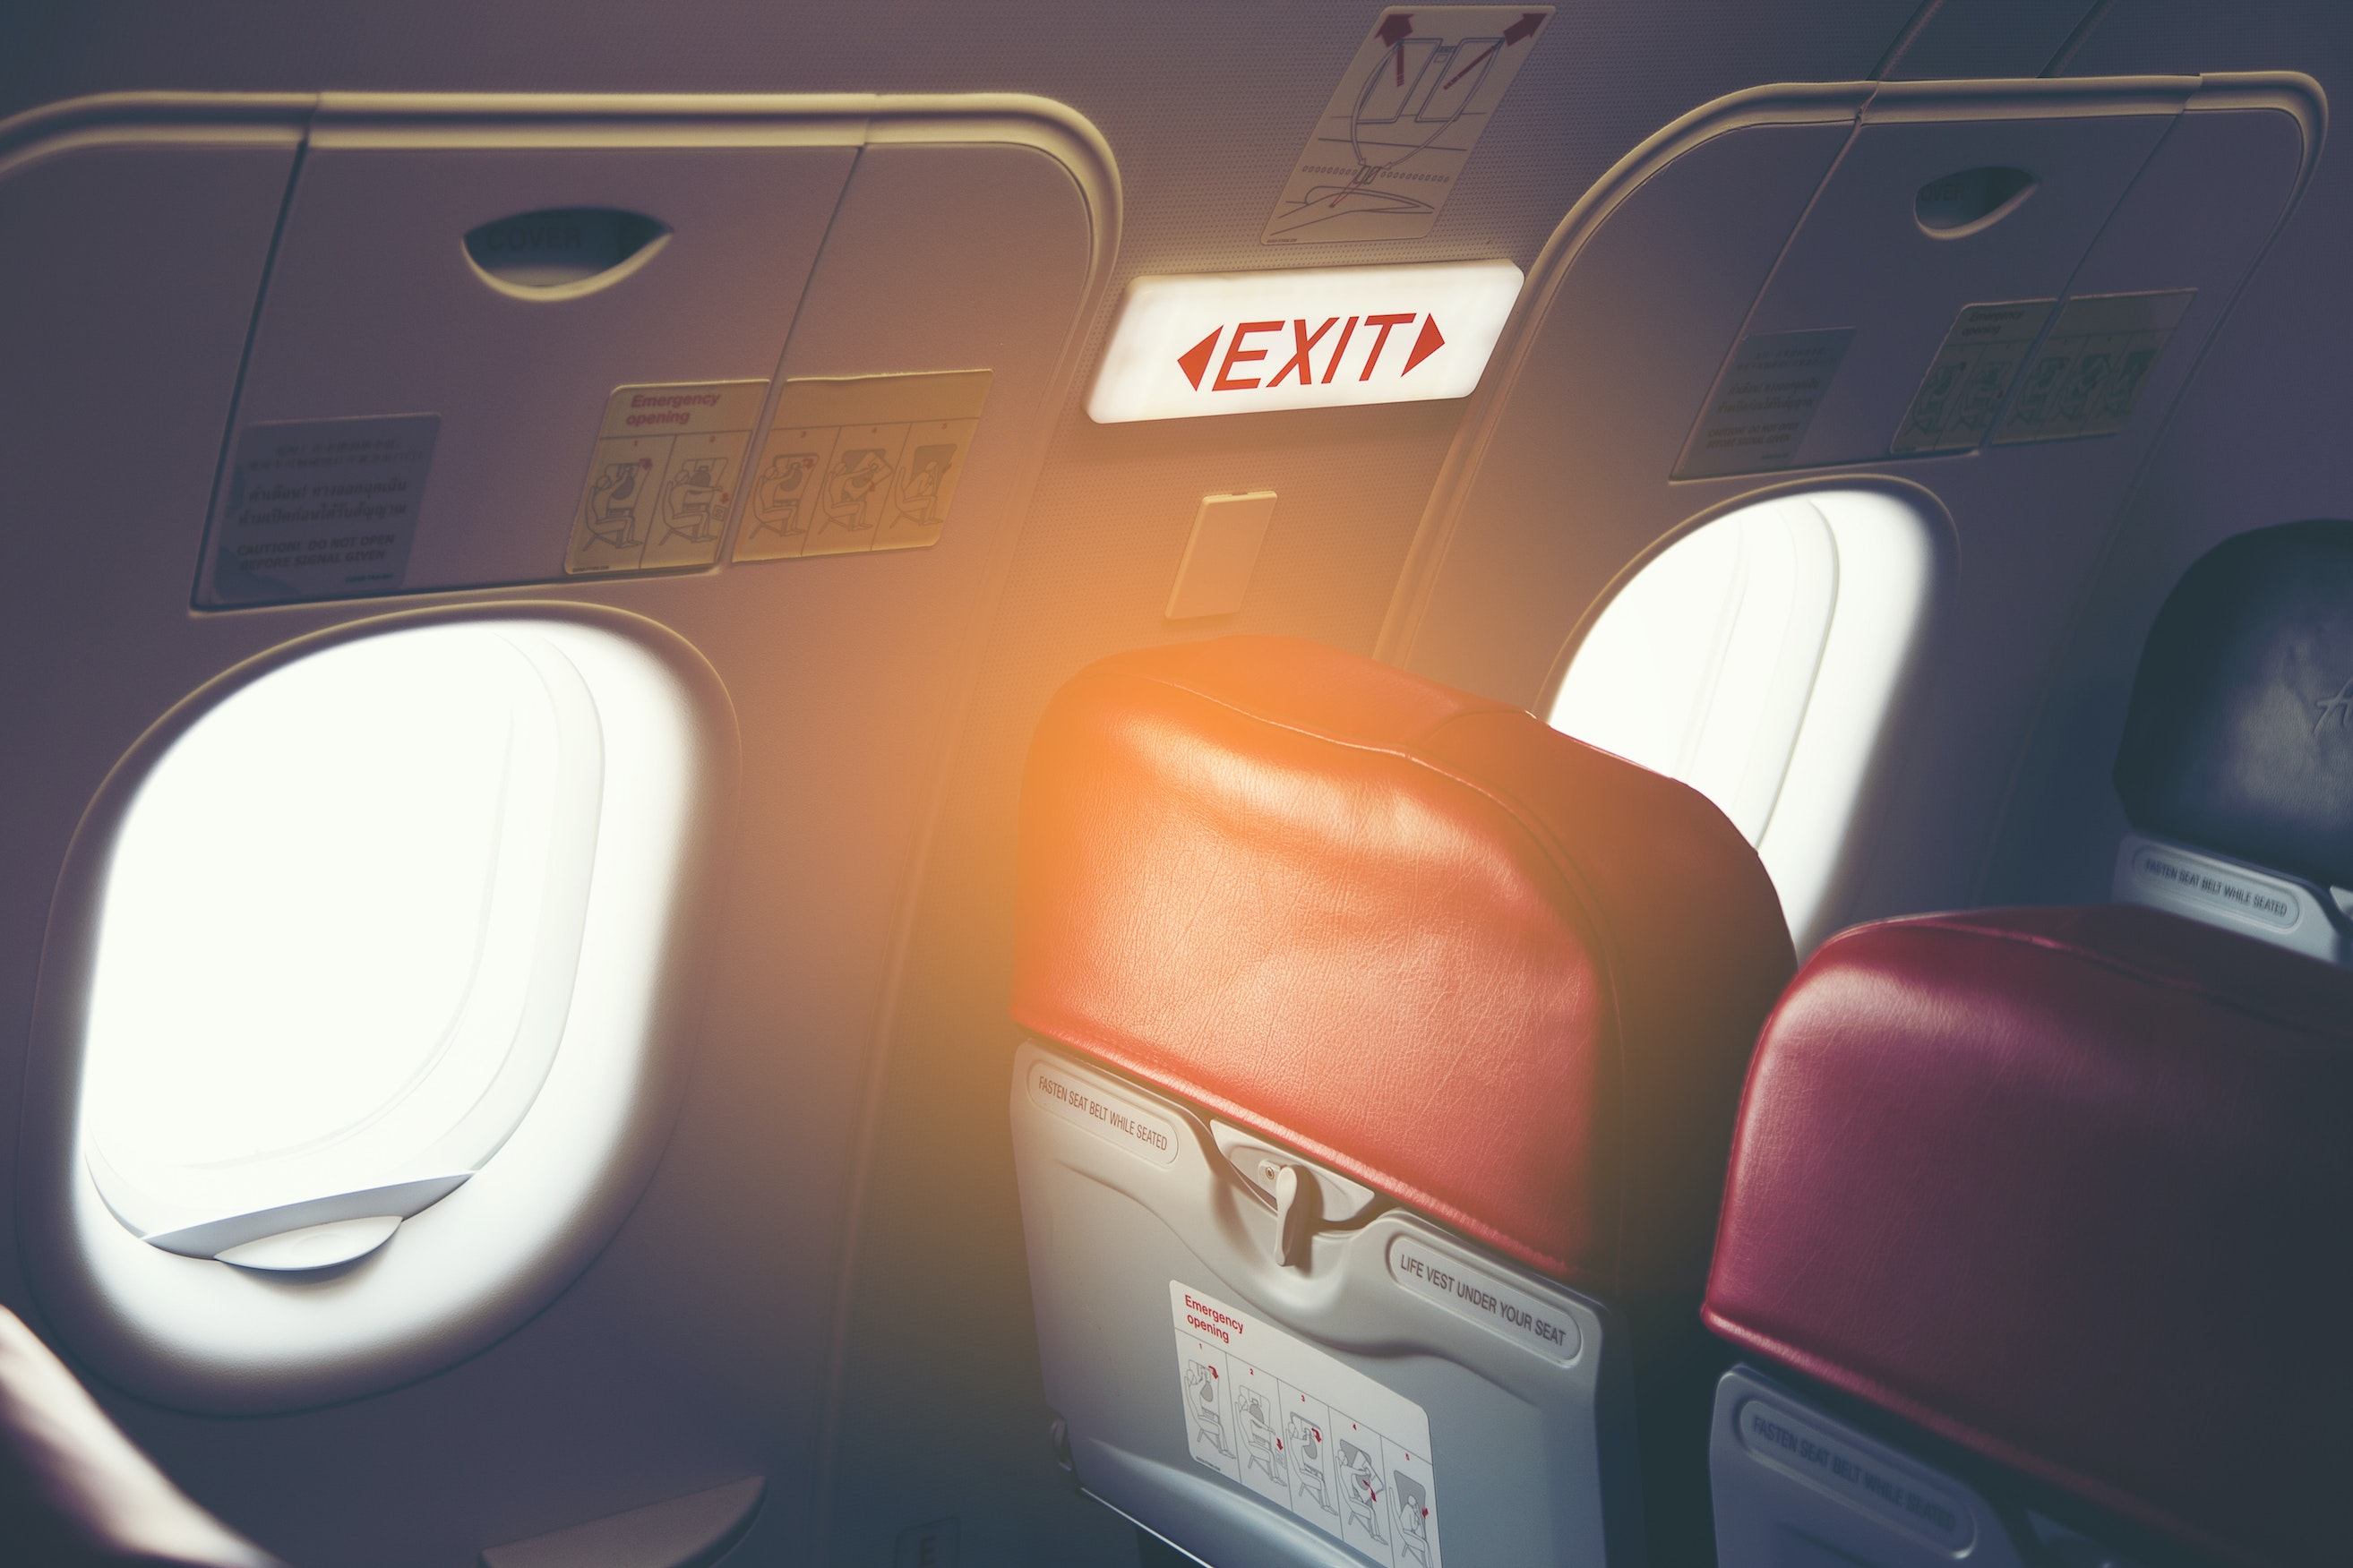 When it comes to getting an exit row seat, it never hurts to ask (and ask, and ask again).